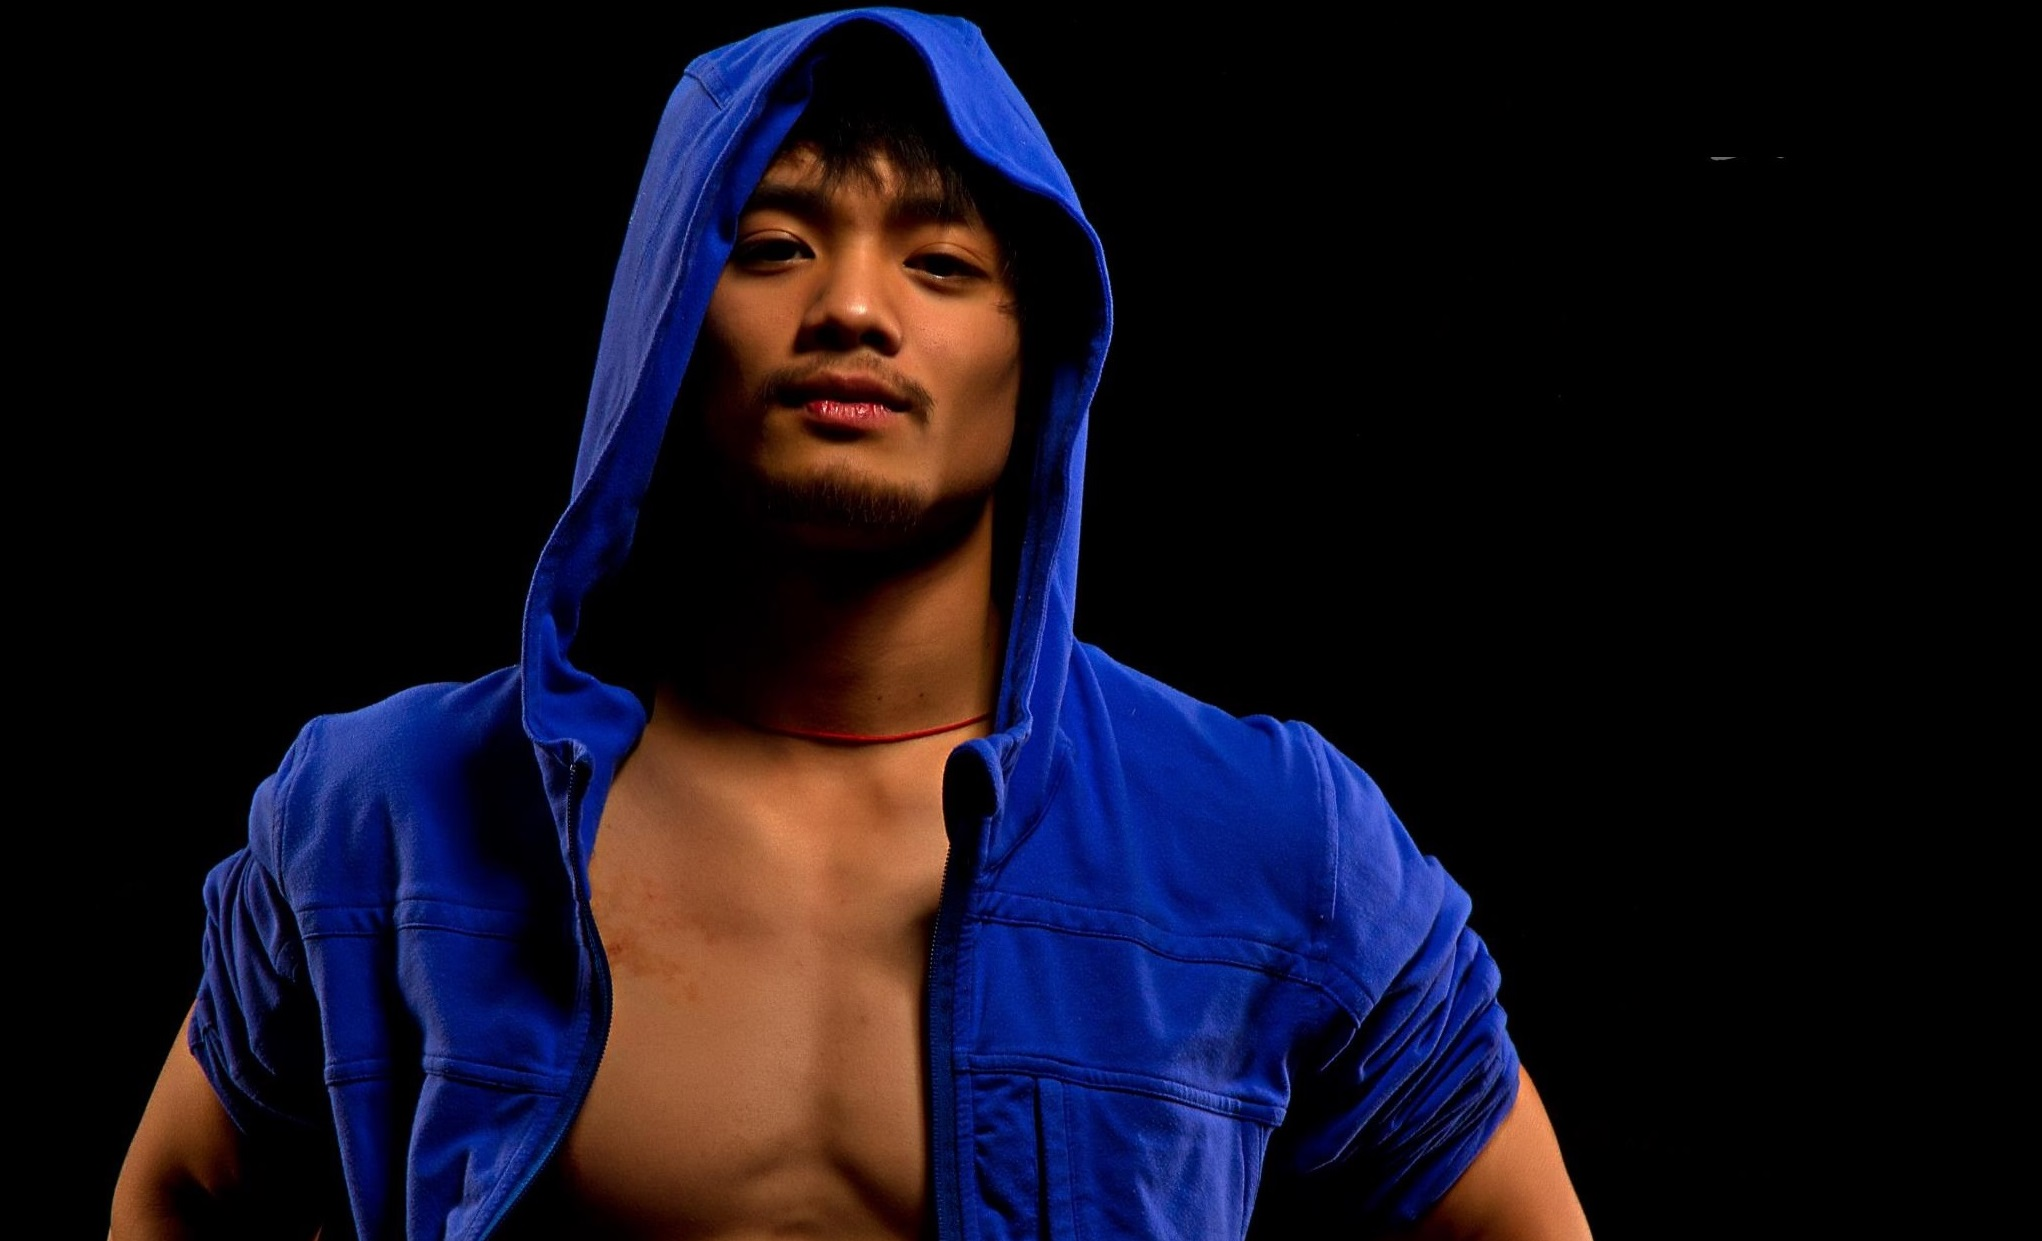 osric chau talks